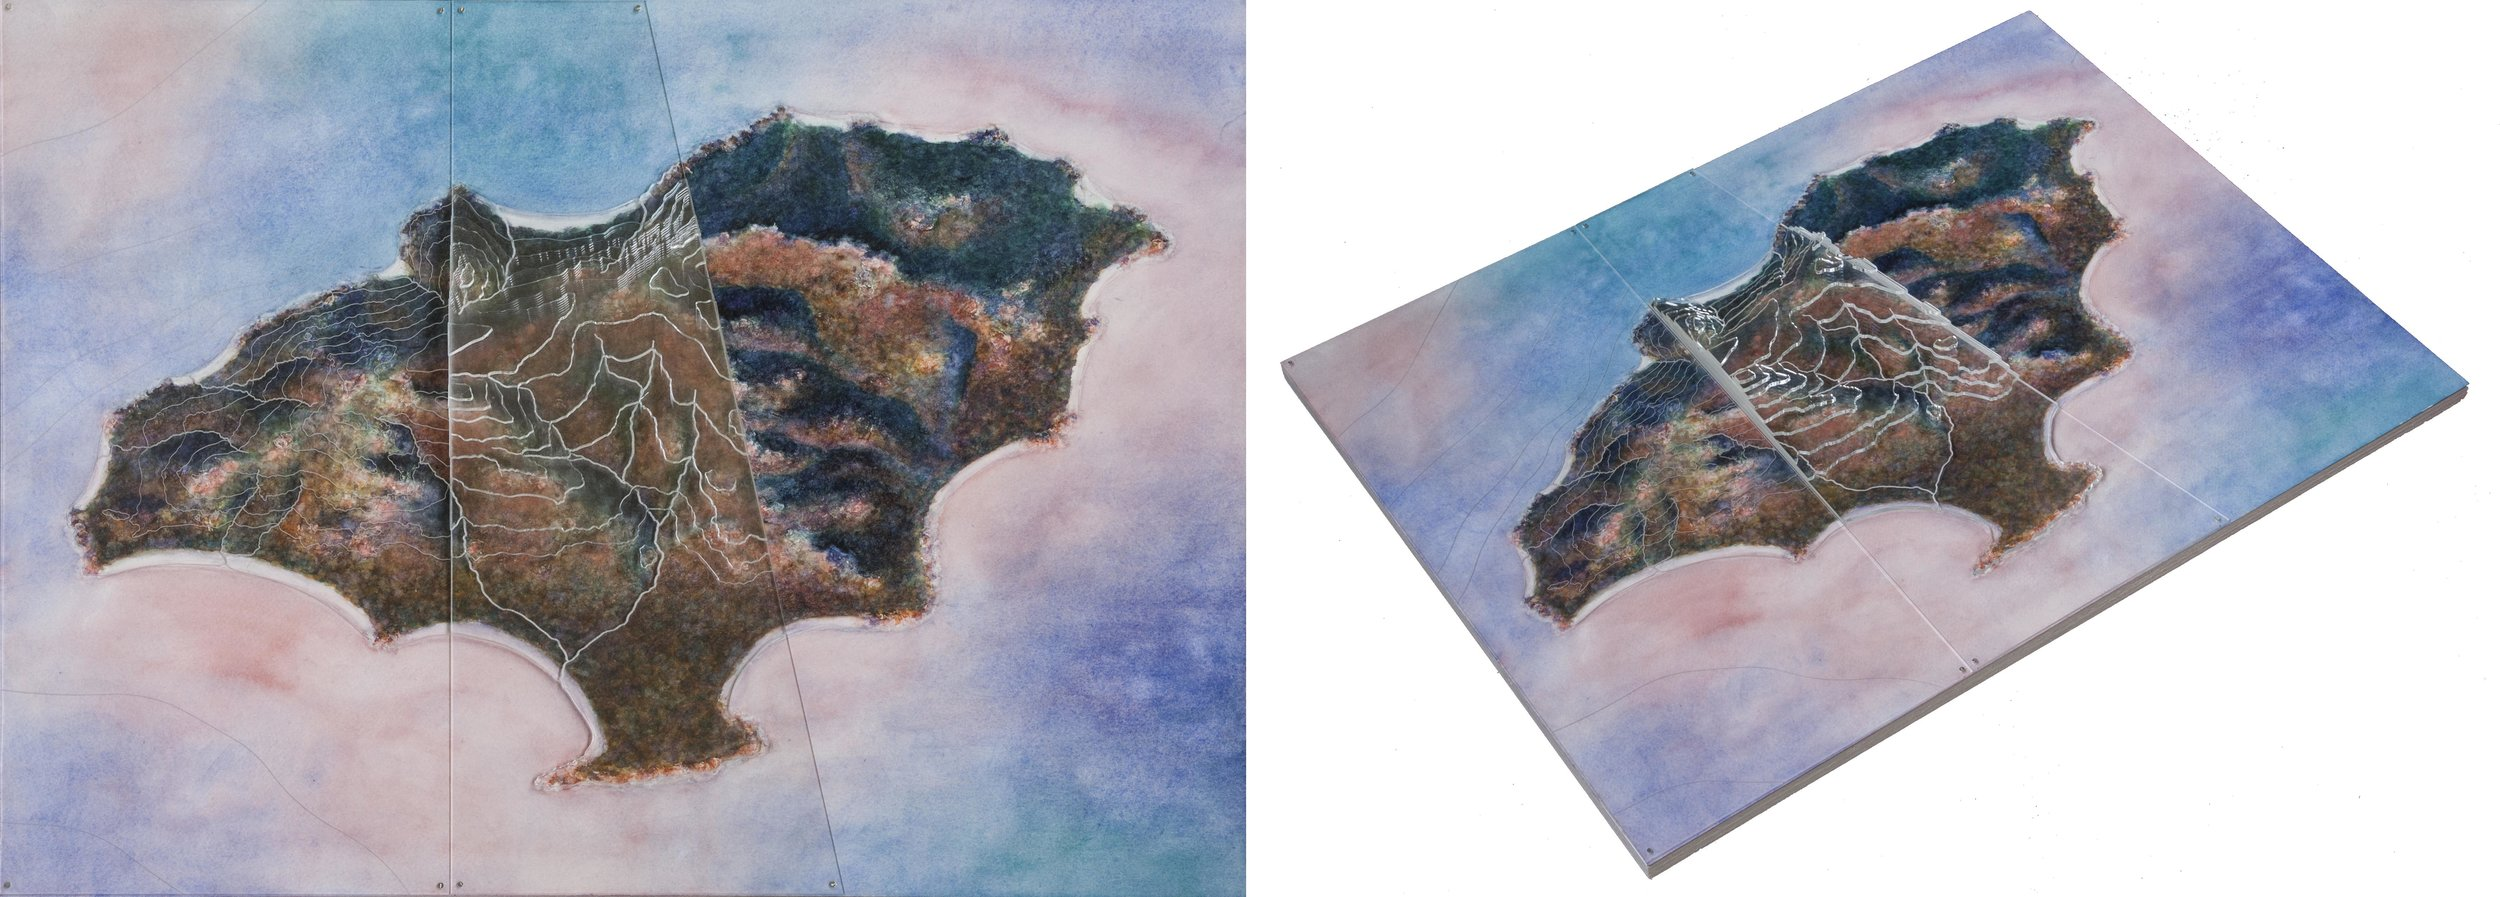 "Bat Island , watercolor on paper with layered plexiglass, 15""x20""x1"". The plexiglass in the center is layered like a topographical model; on the left side it's a single layer etched with waterways and topo lines."